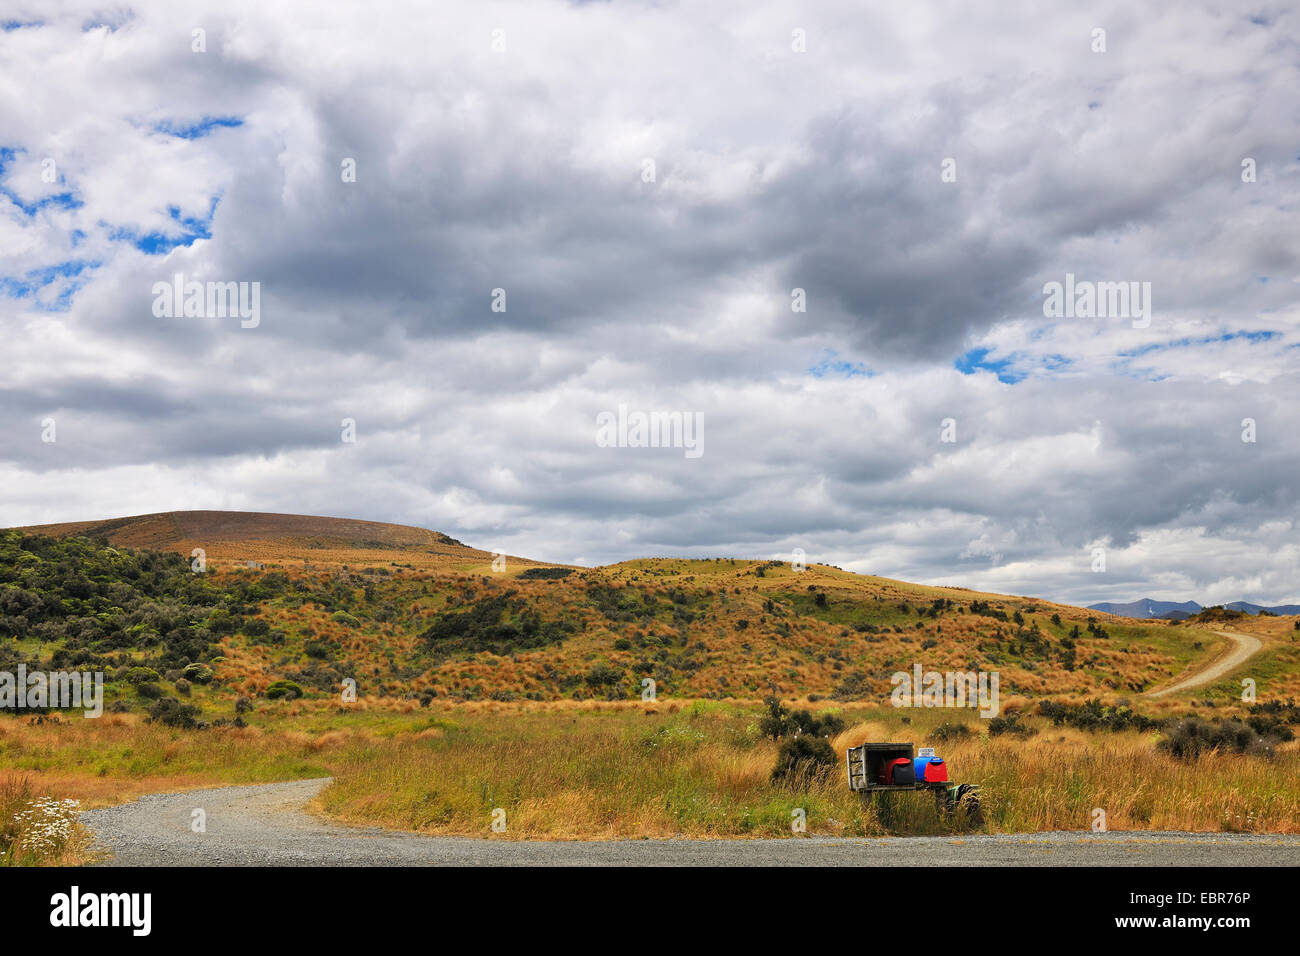 Gravel Road with Mailbox, New Zealand, Southern Island, Southland, Centre Hill - Stock Image